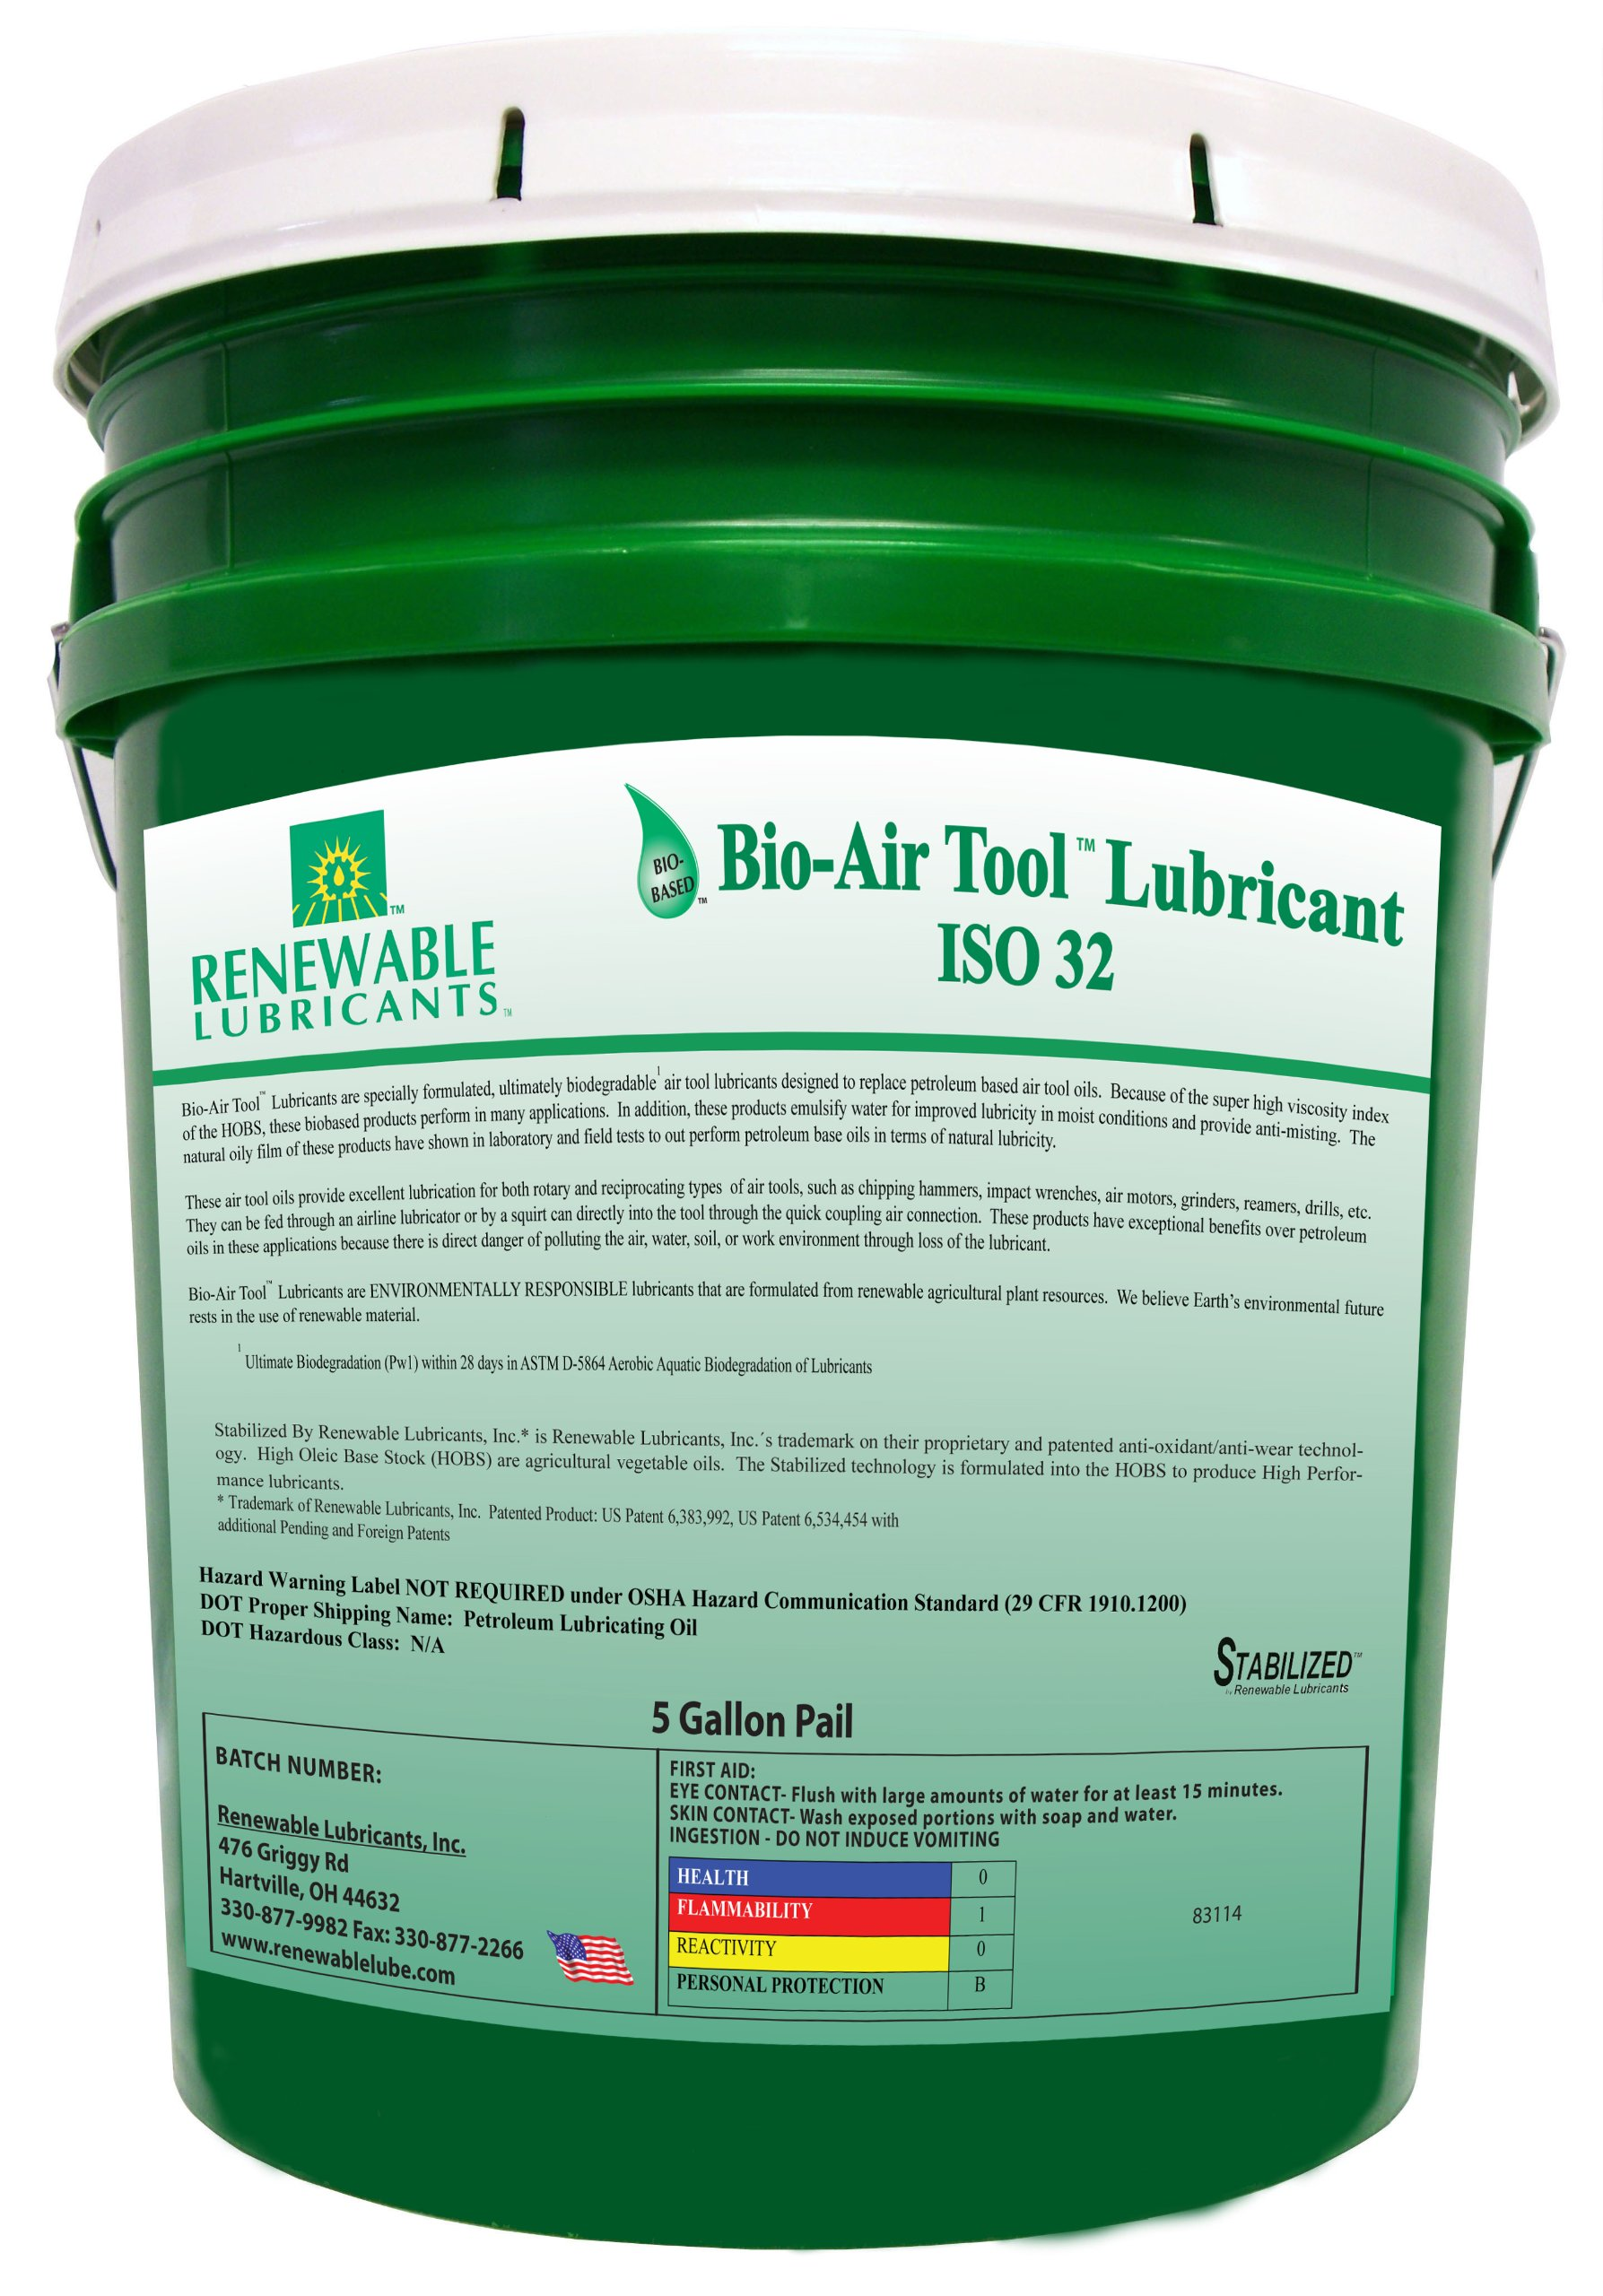 Renewable Lubricants Bio-Air Tool ISO 32 Lubricant Oil, 5 Gallon Pail by Renewable Lubricants